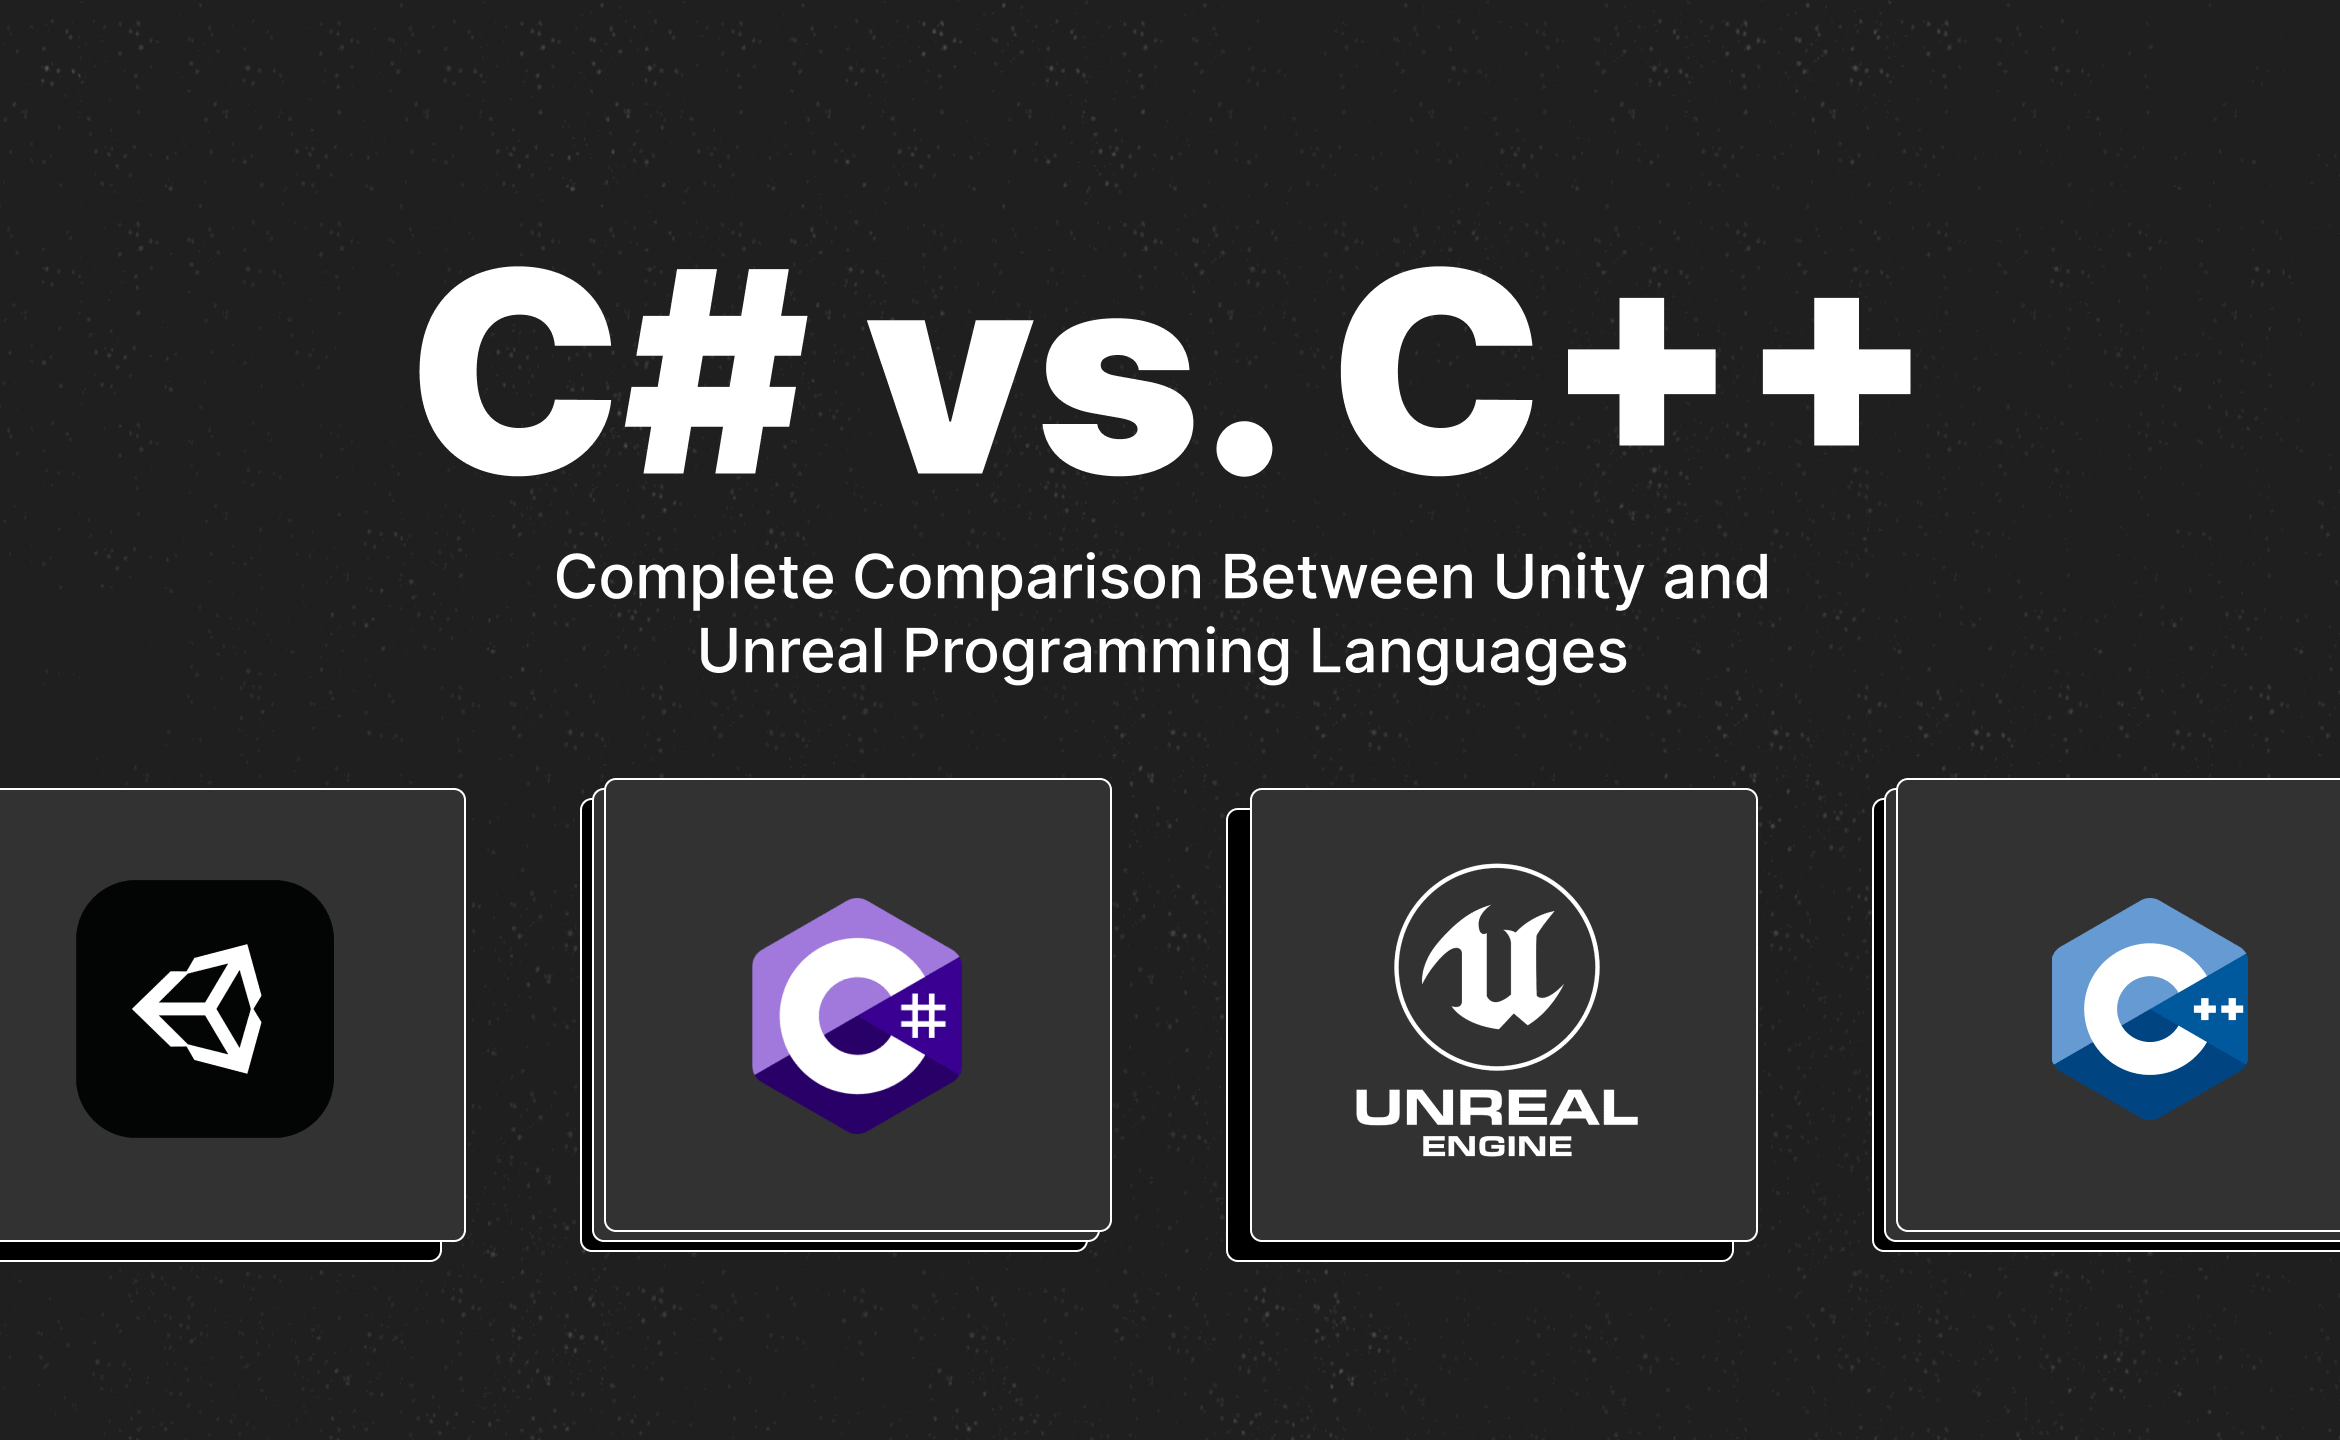 Unity and Unreal programming languages